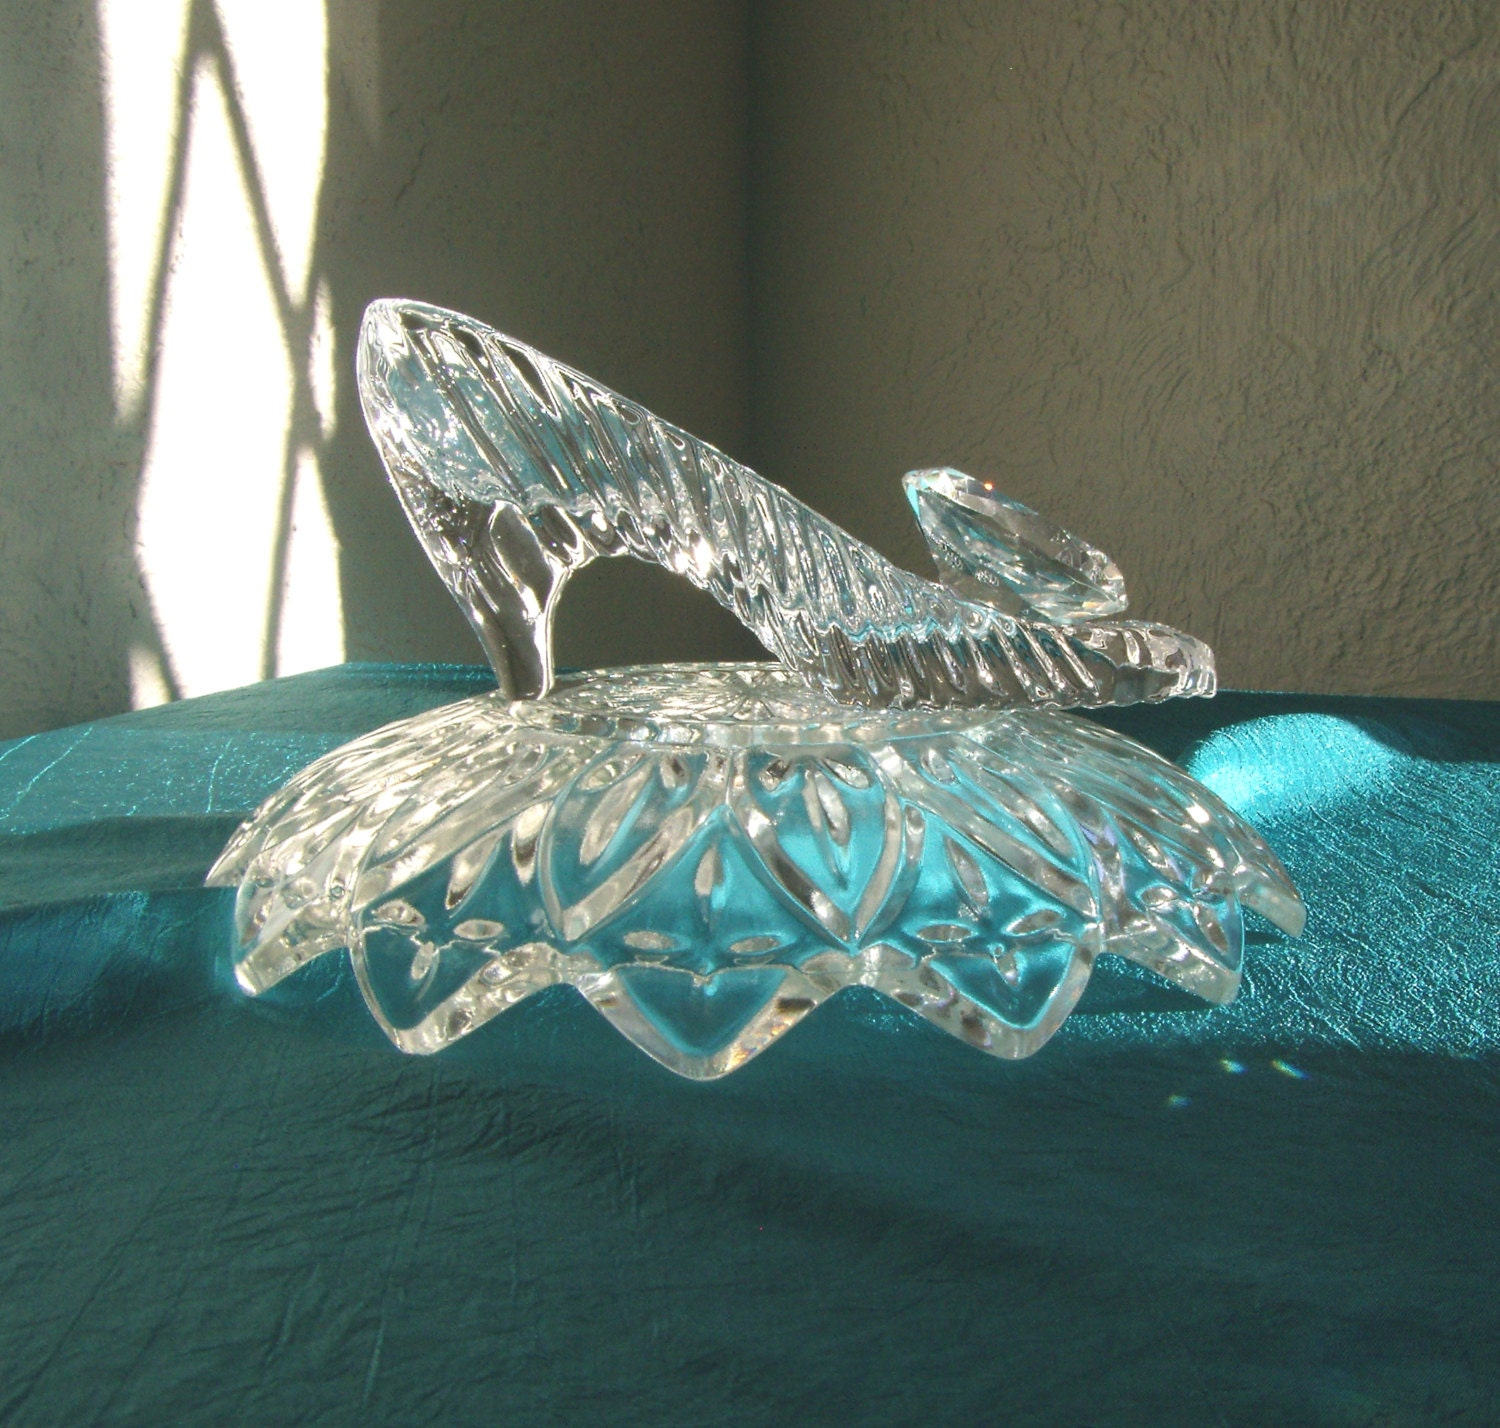 Princess Wedding Cinderella Glass Slipper with Oleg Cassini